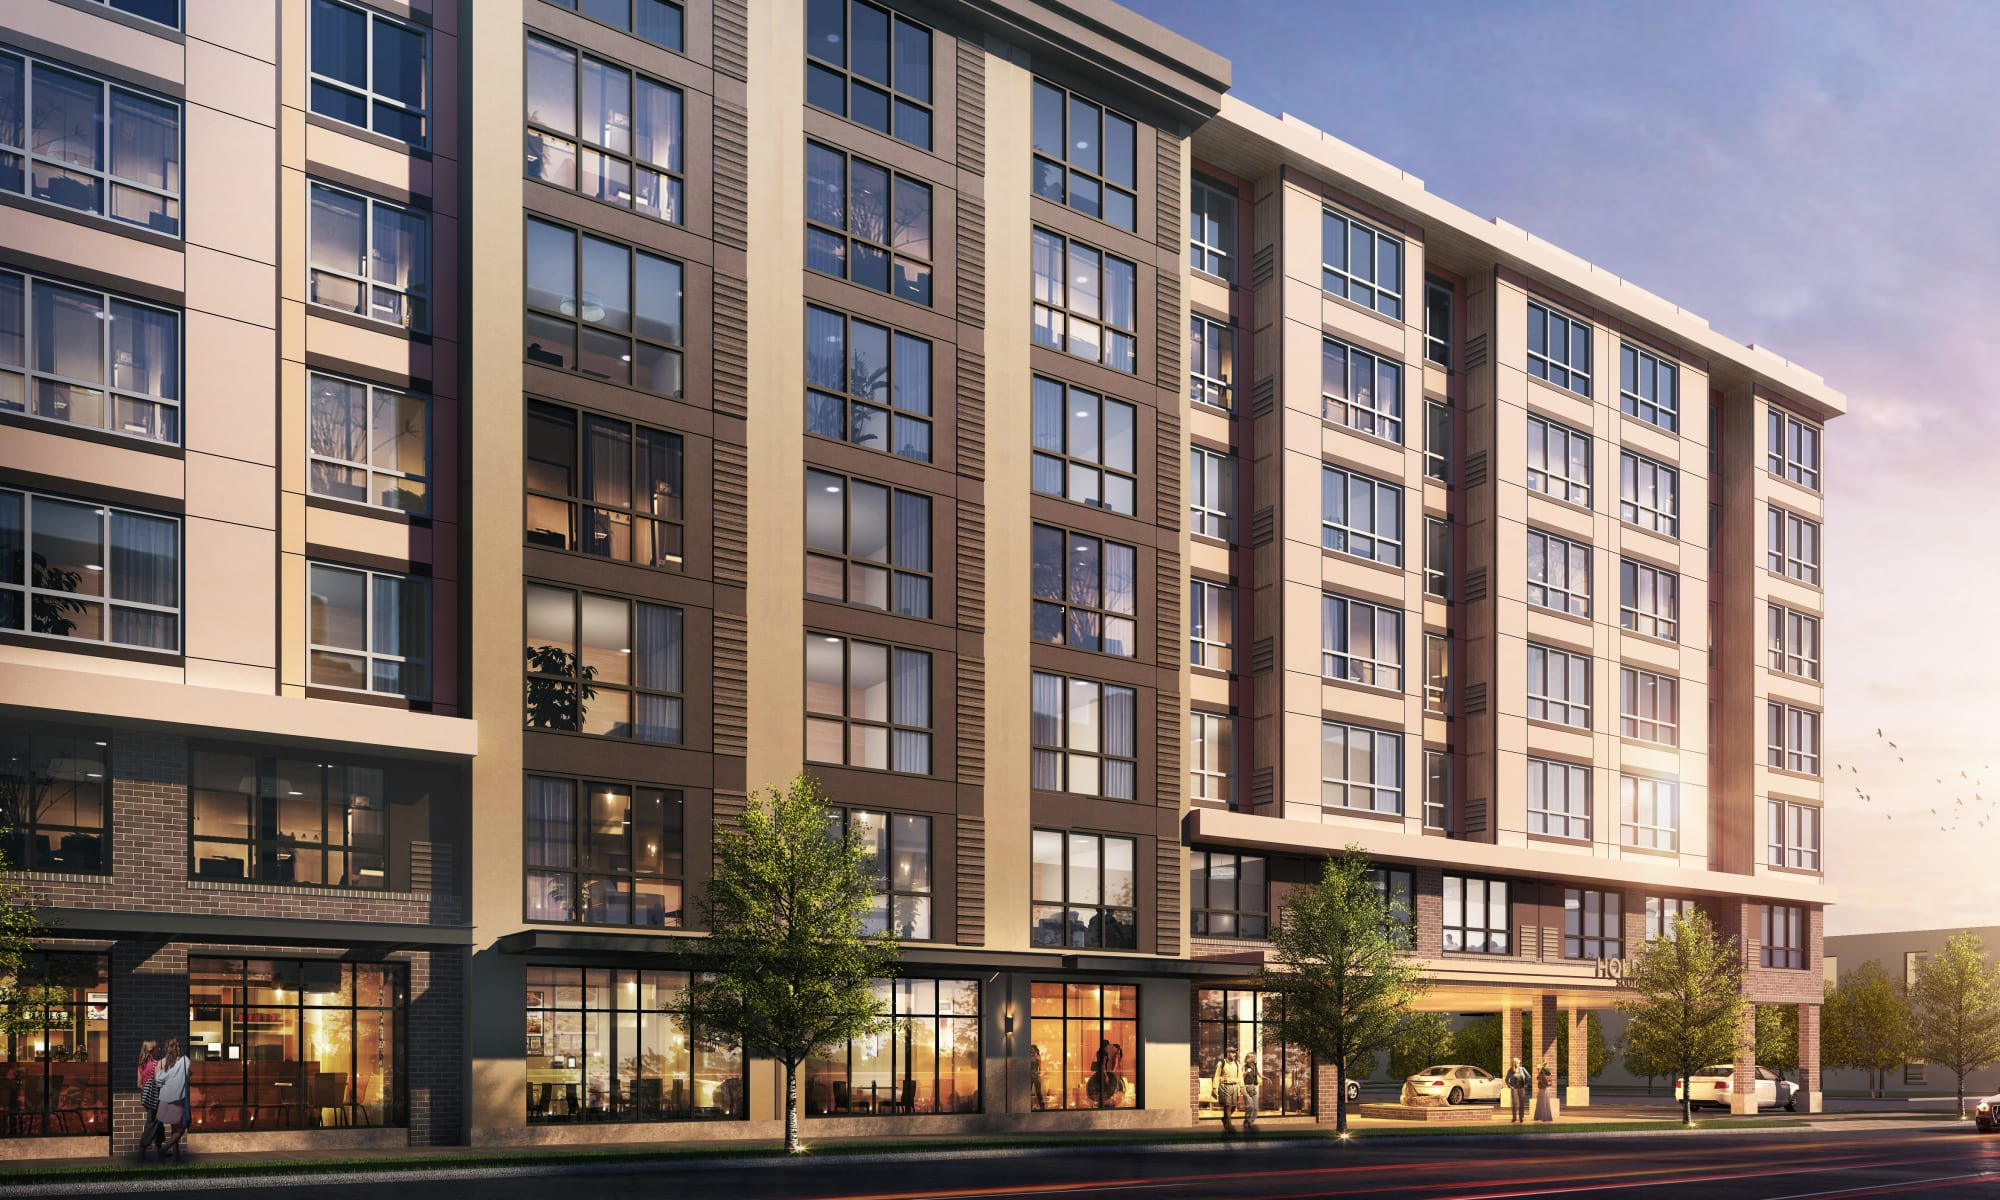 Artist rendering of the west face of resident apartment building at Holden Southcenter in Tukwila, Washington